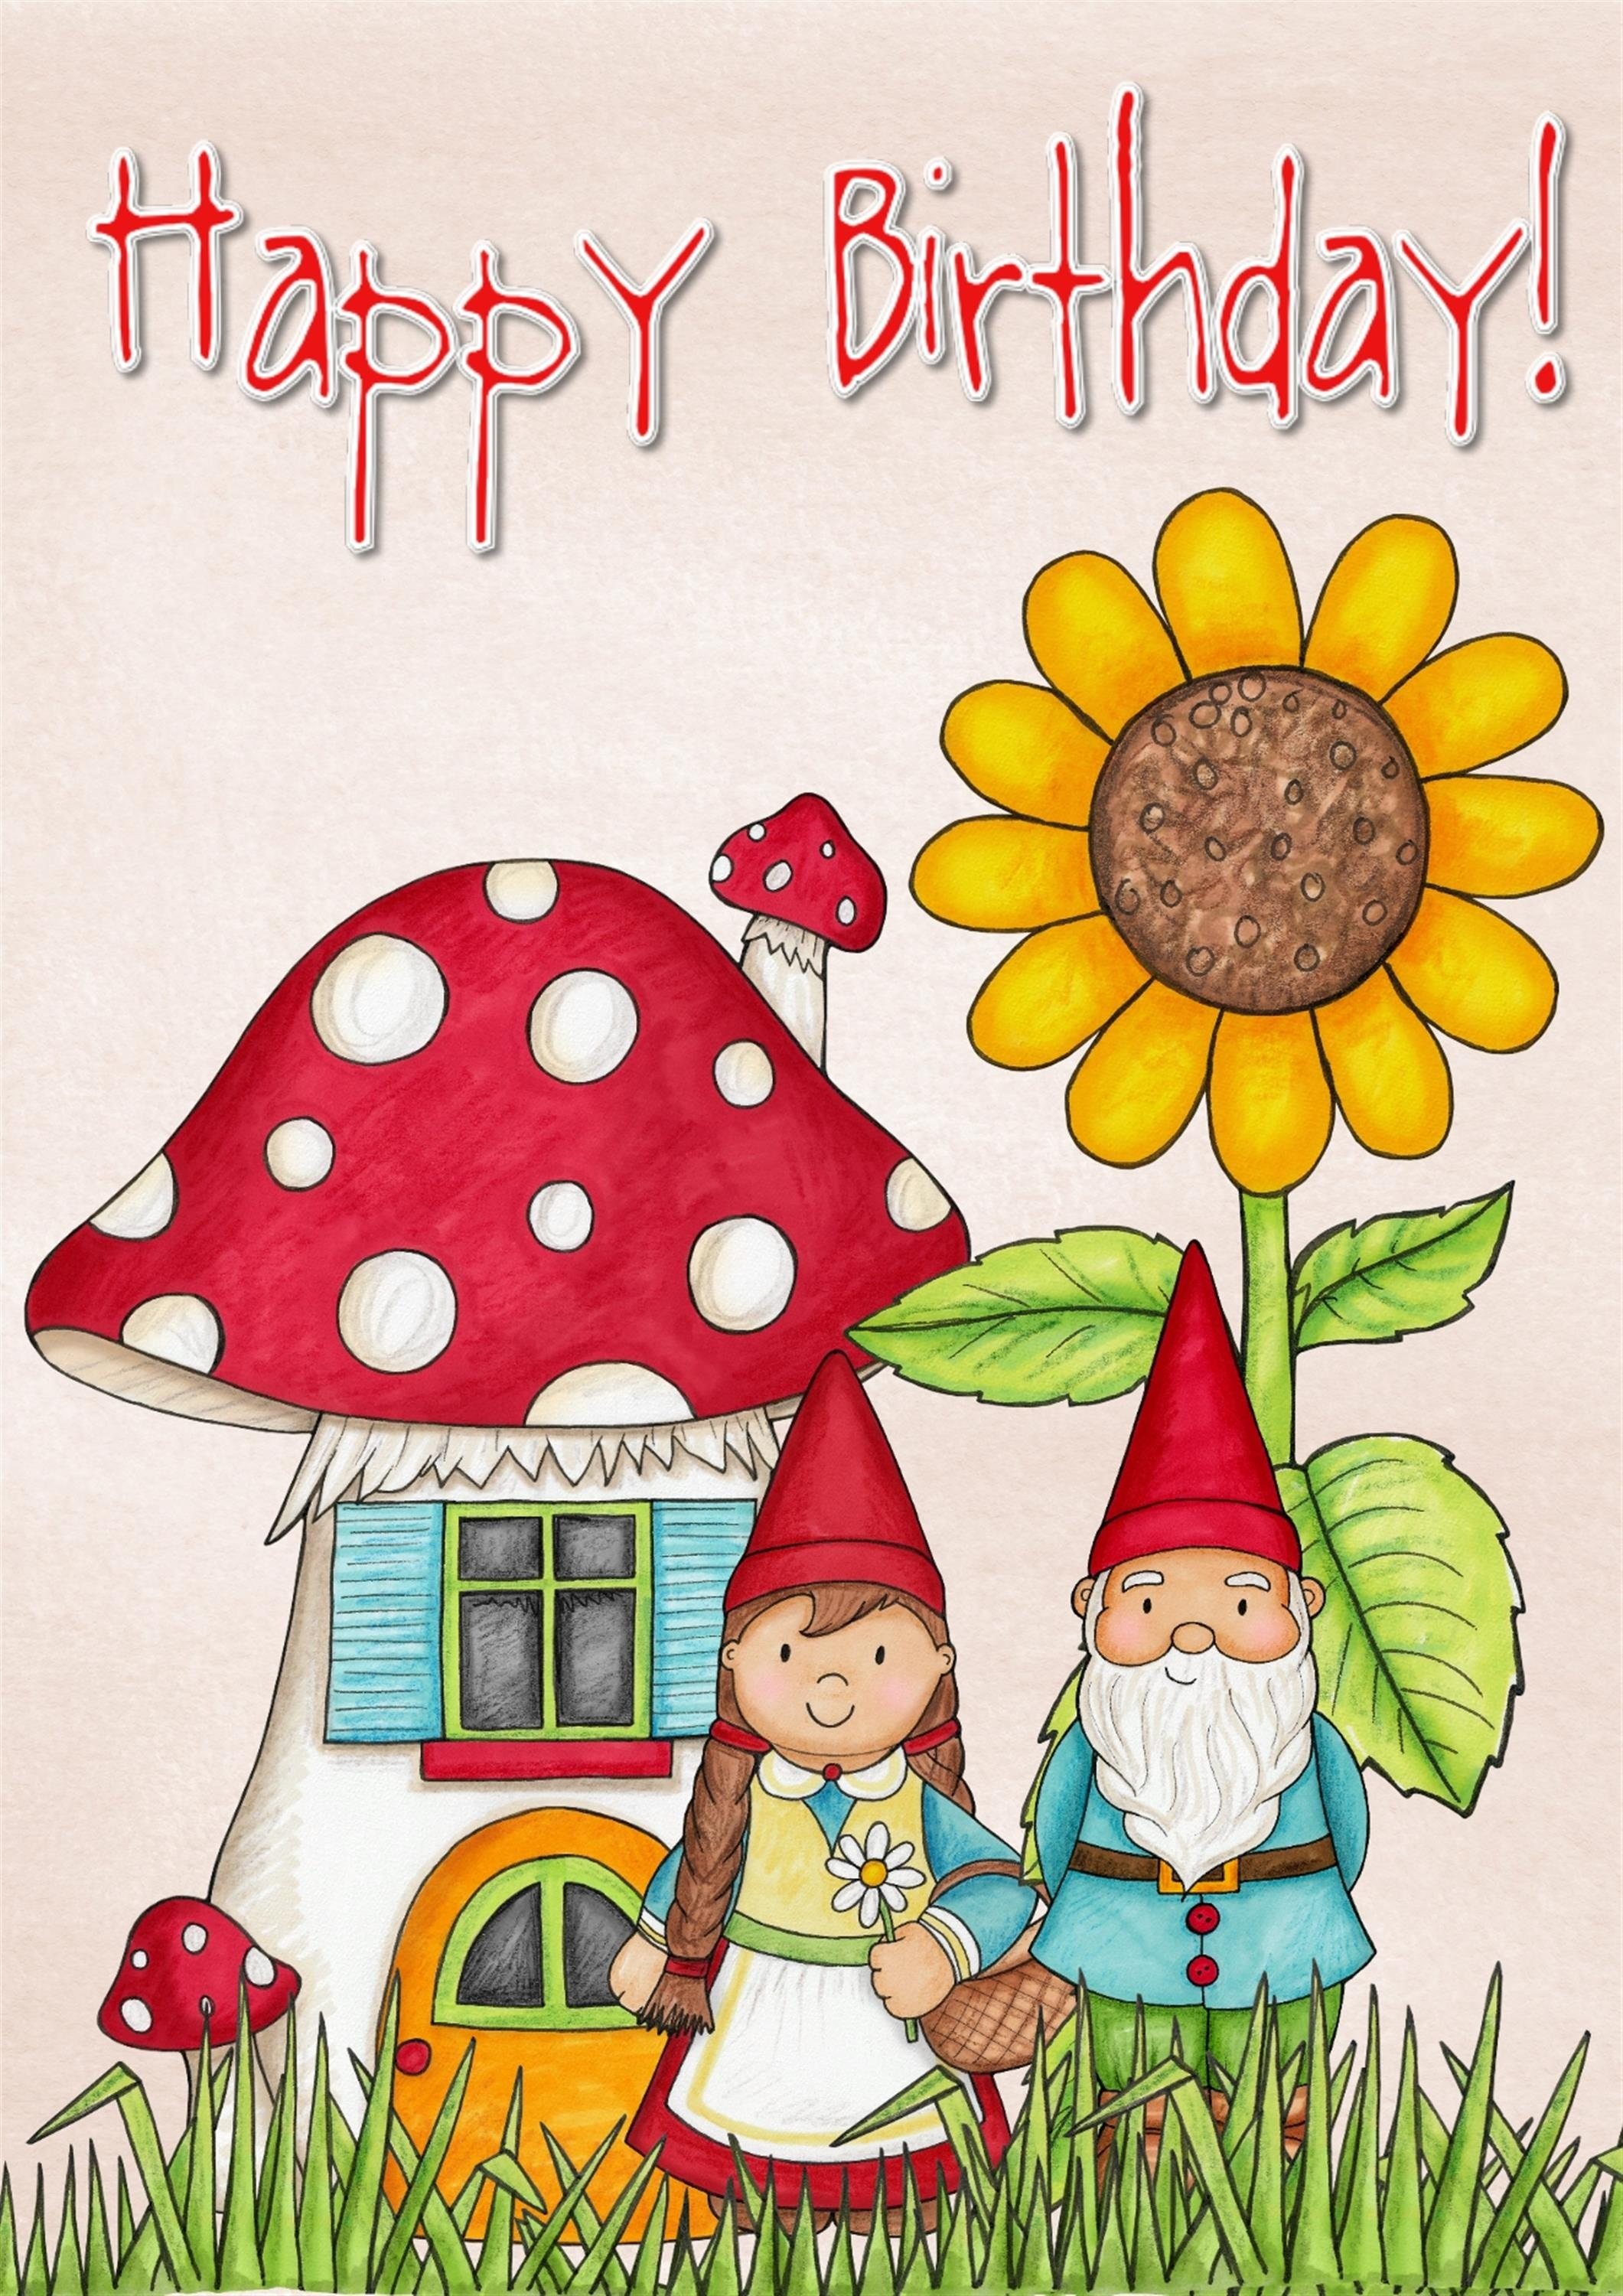 Happy Birthday Greeting Card With Gnoms And Flowers Free Image